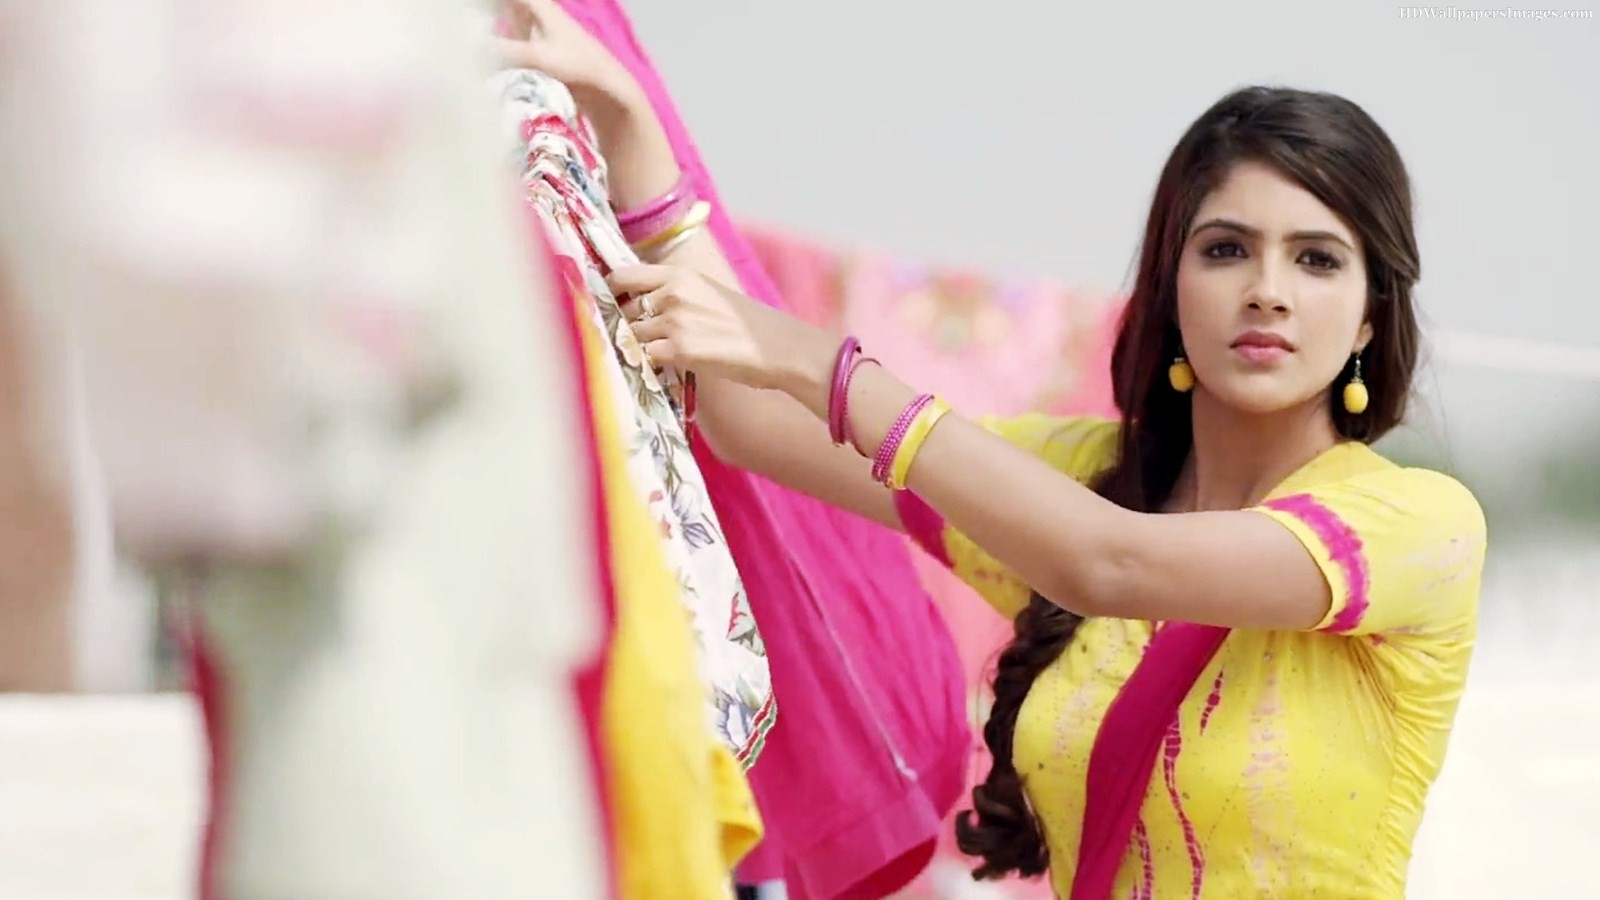 beautiful punjabi girls wallpapers and pictures one hd wallpaper